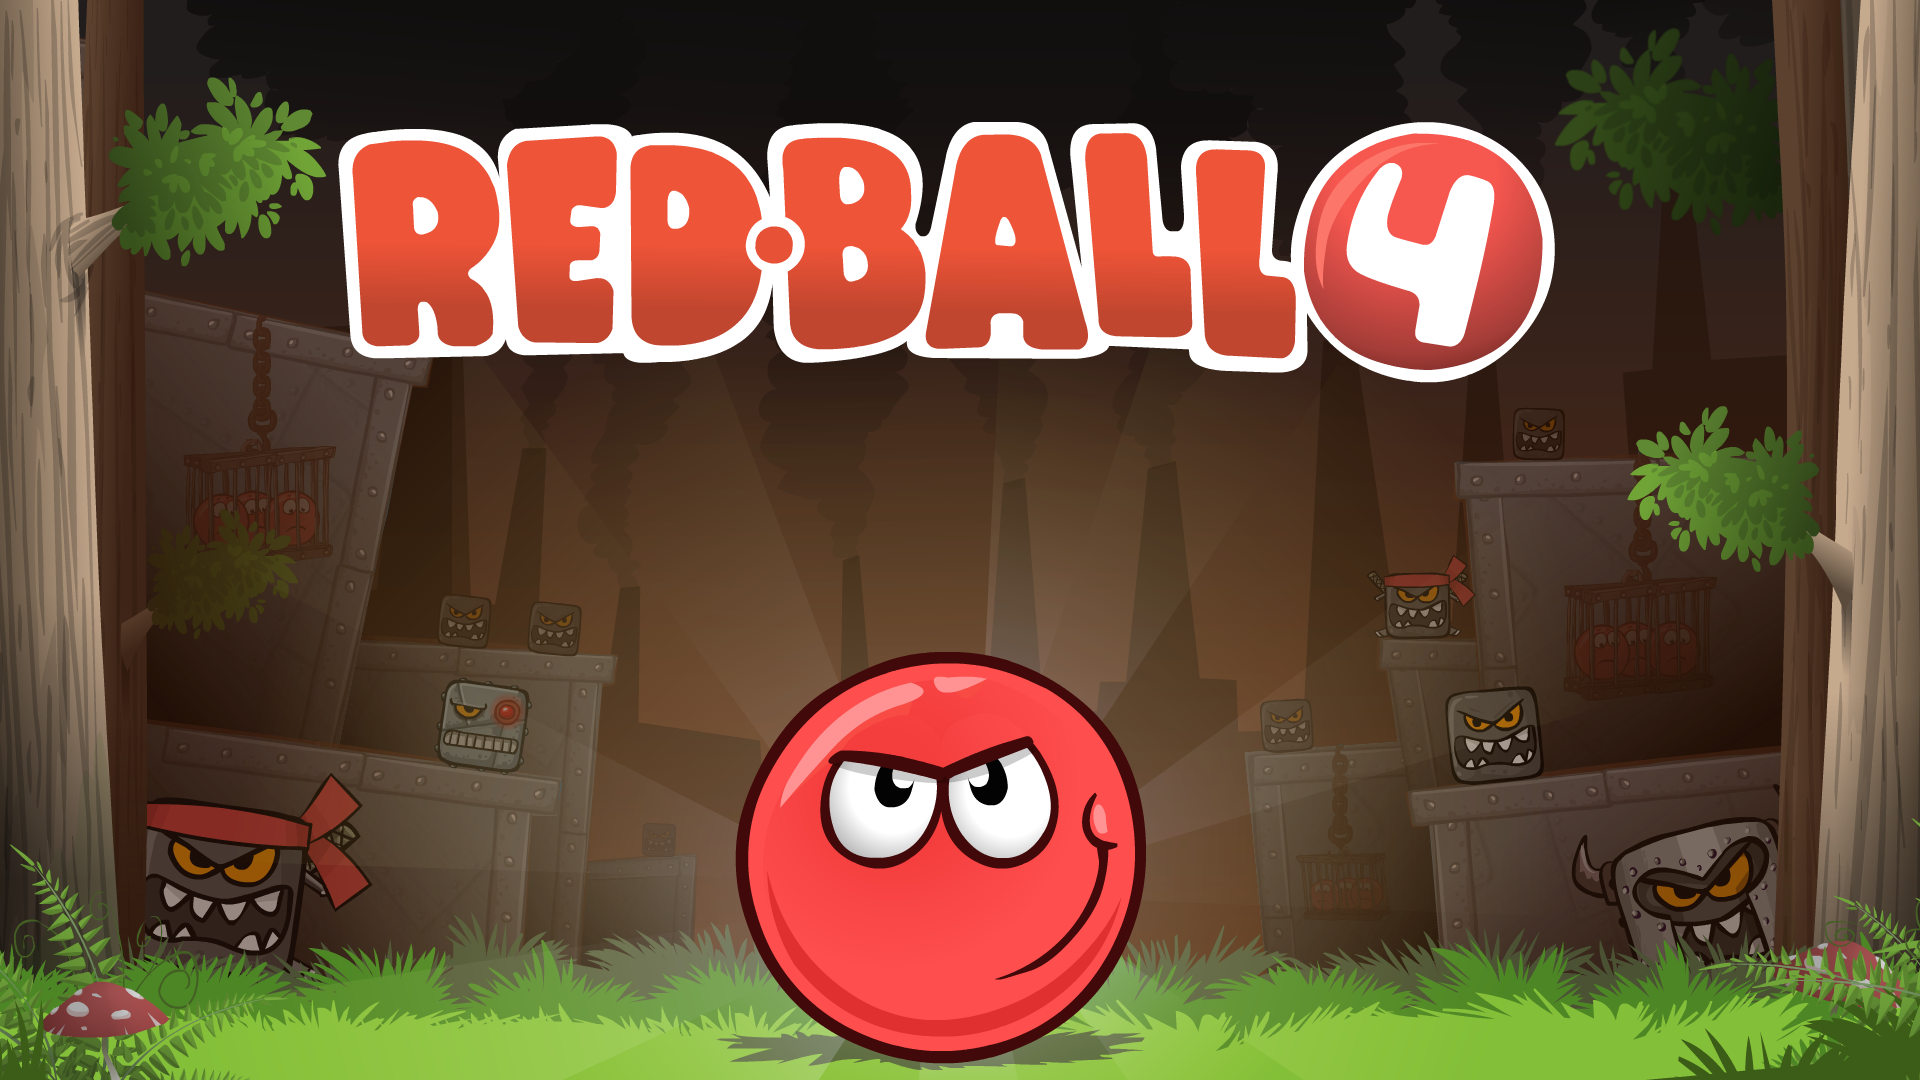 Red-Ball-4-Play-Red-Ball-Games-Unblocked-Online-for-Free